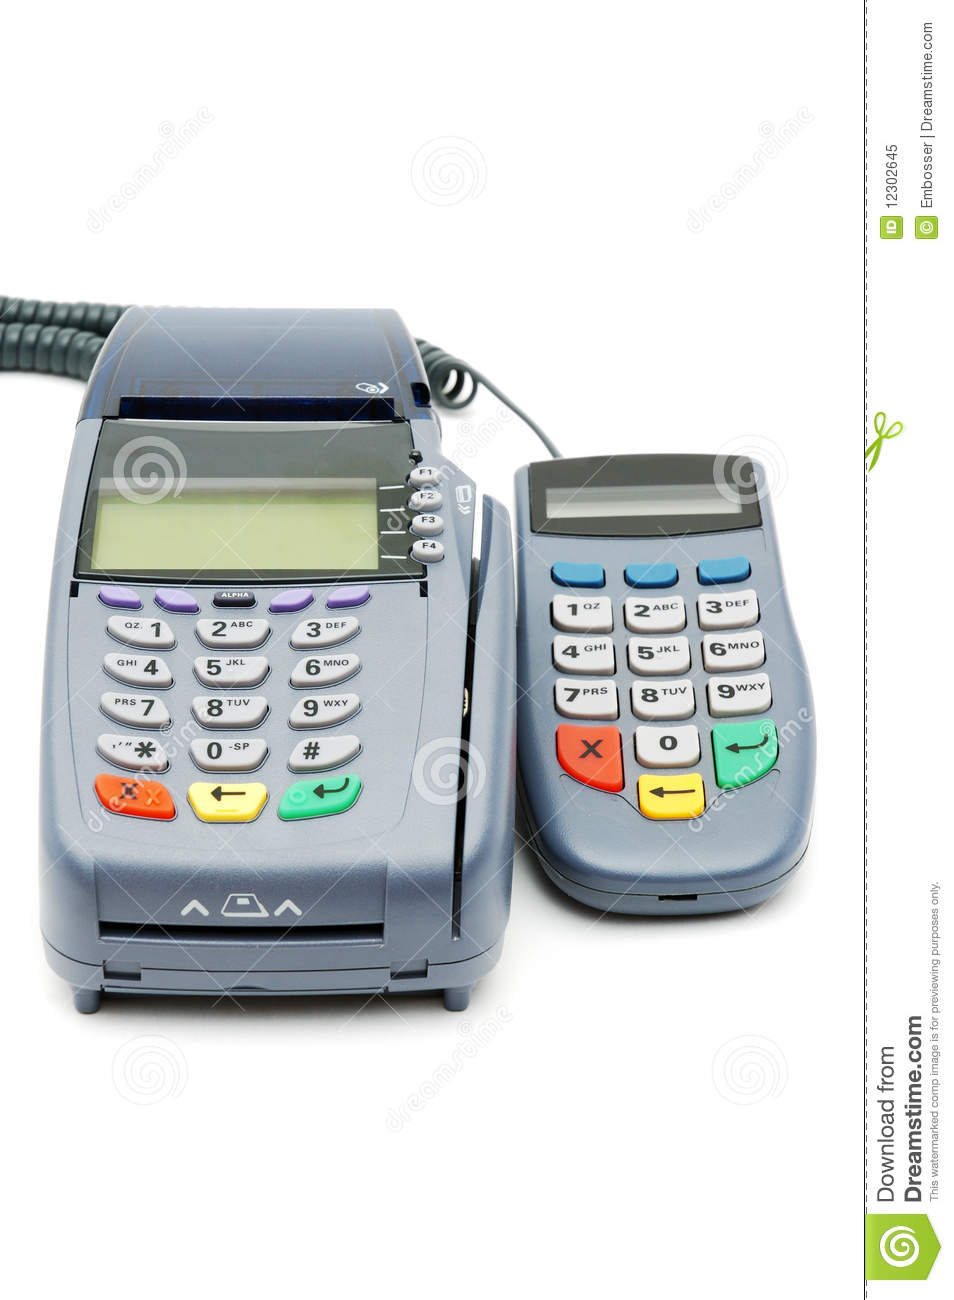 Pos terminal with pin pad stock image image of reverse 12302645 download comp publicscrutiny Gallery